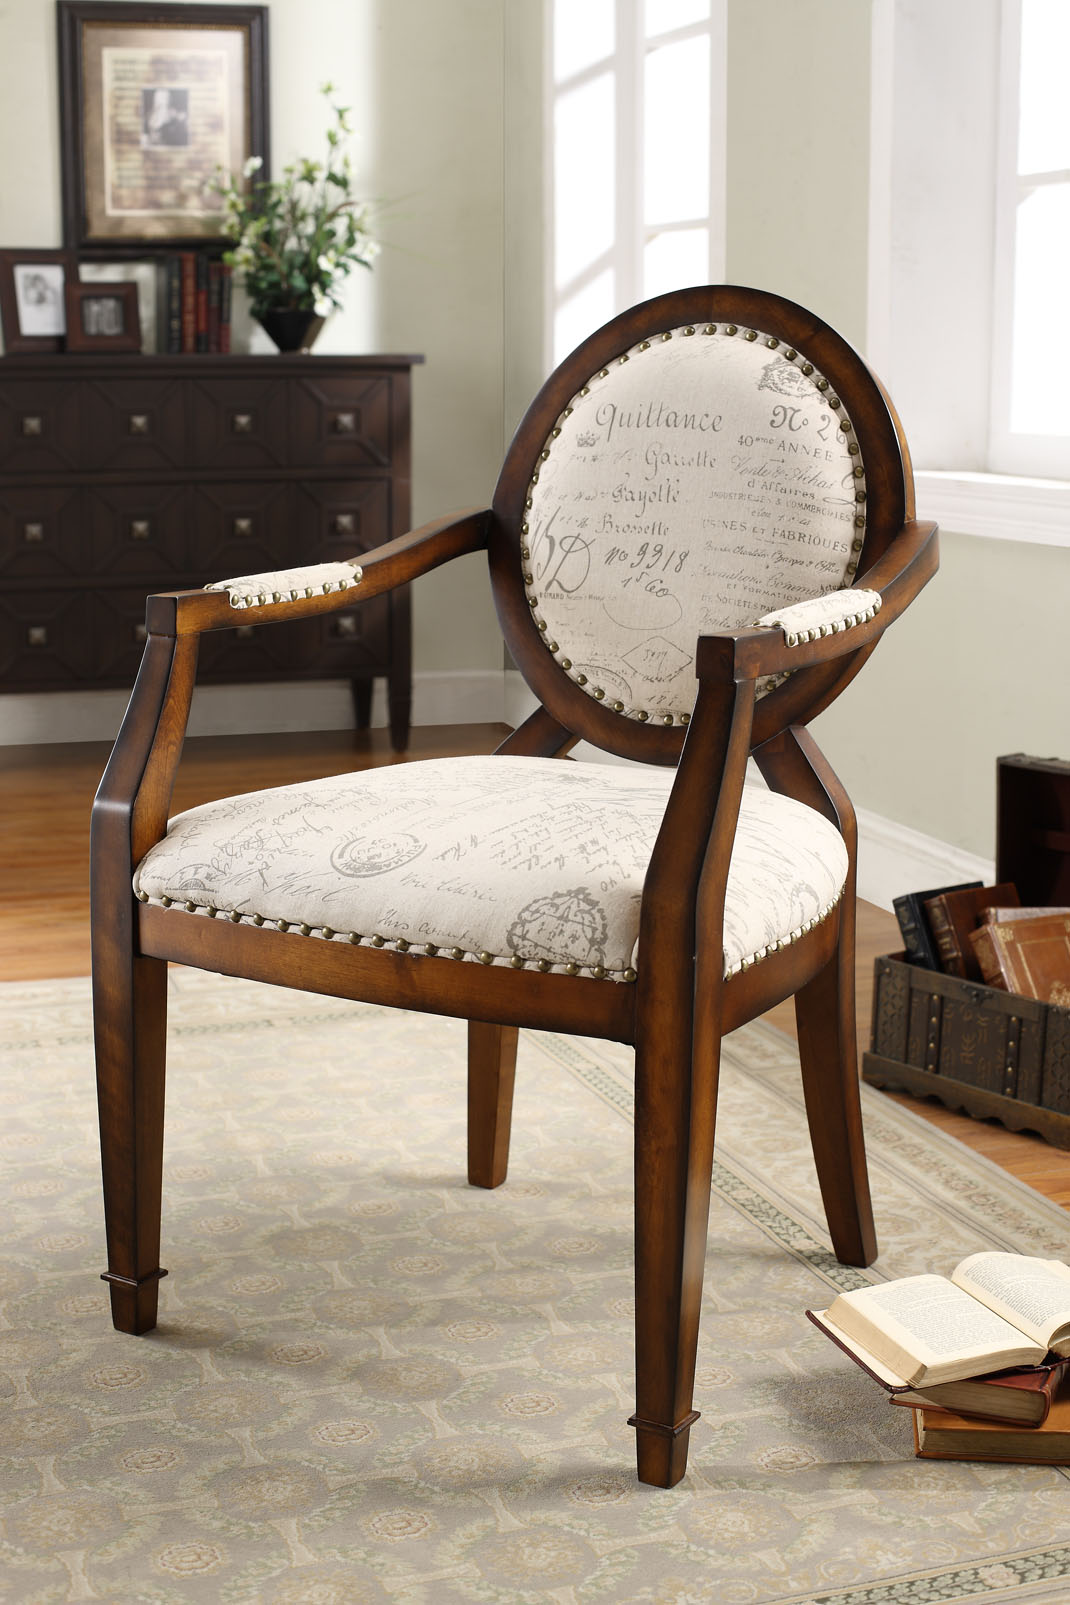 Antique Wooden Chair Amazing Antique Wooden Chair Designs For Timeless Elegance